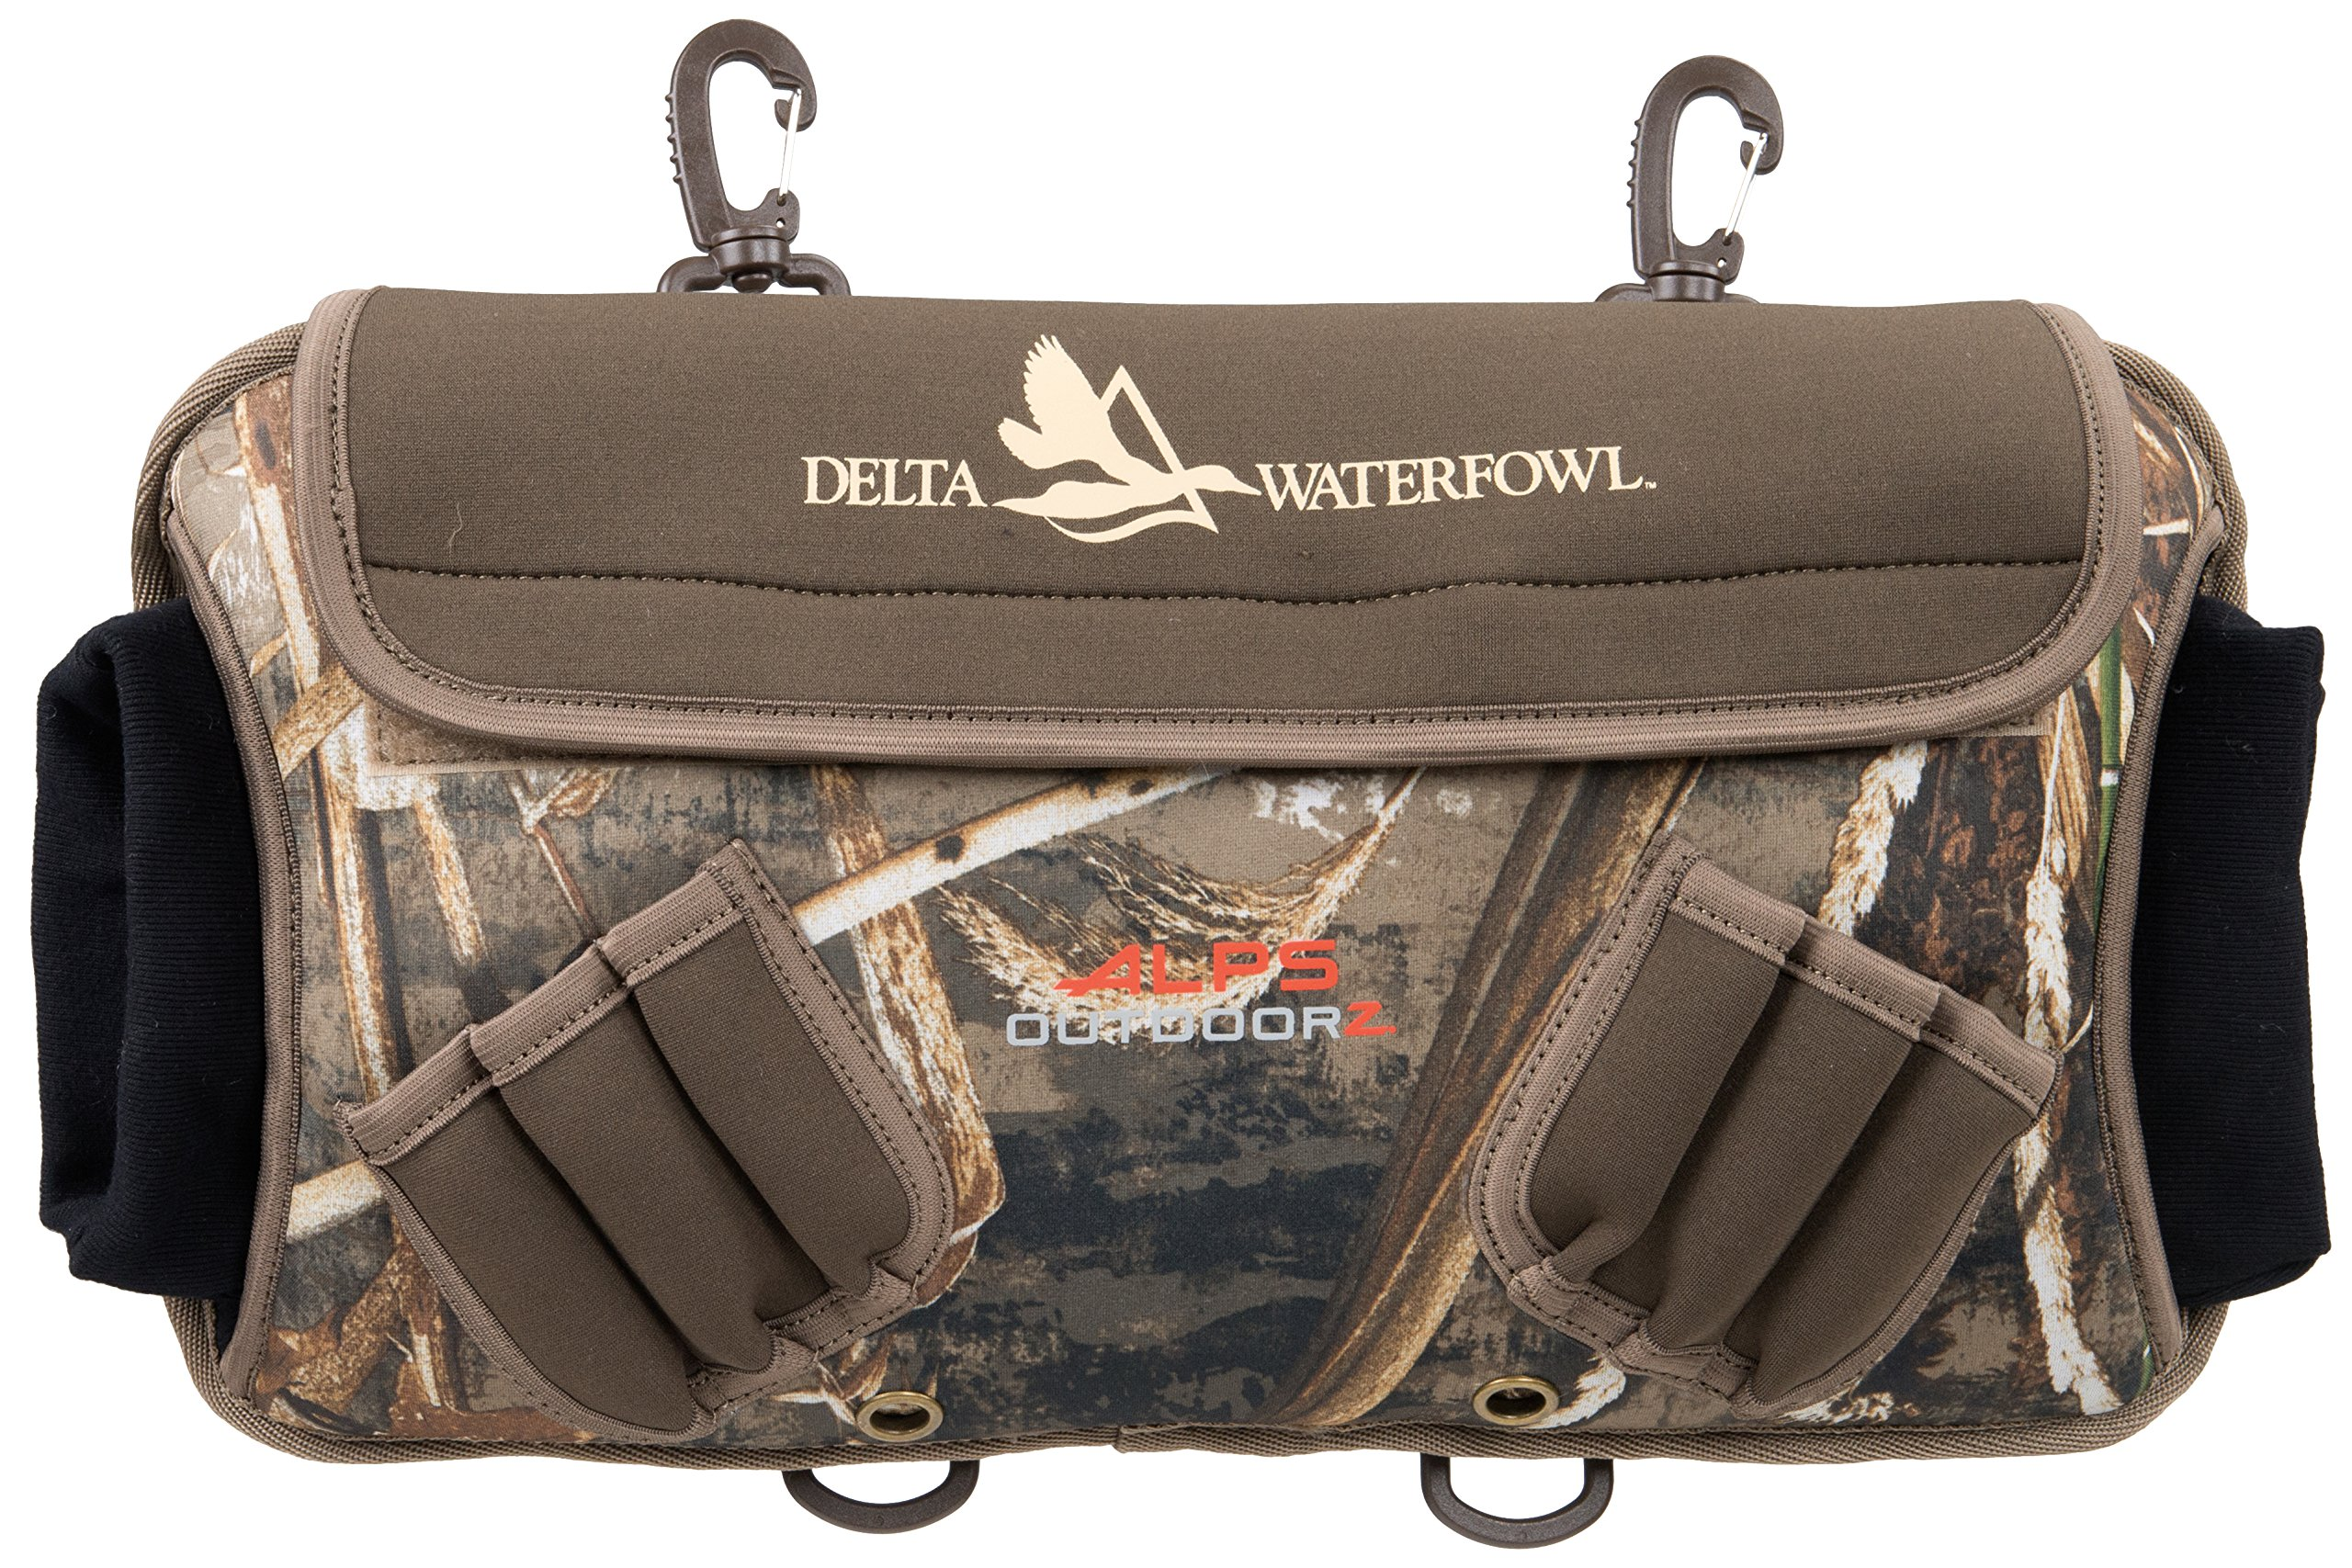 ALPS OutdoorZ Delta Waterfowl Deluxe Hand Warmer